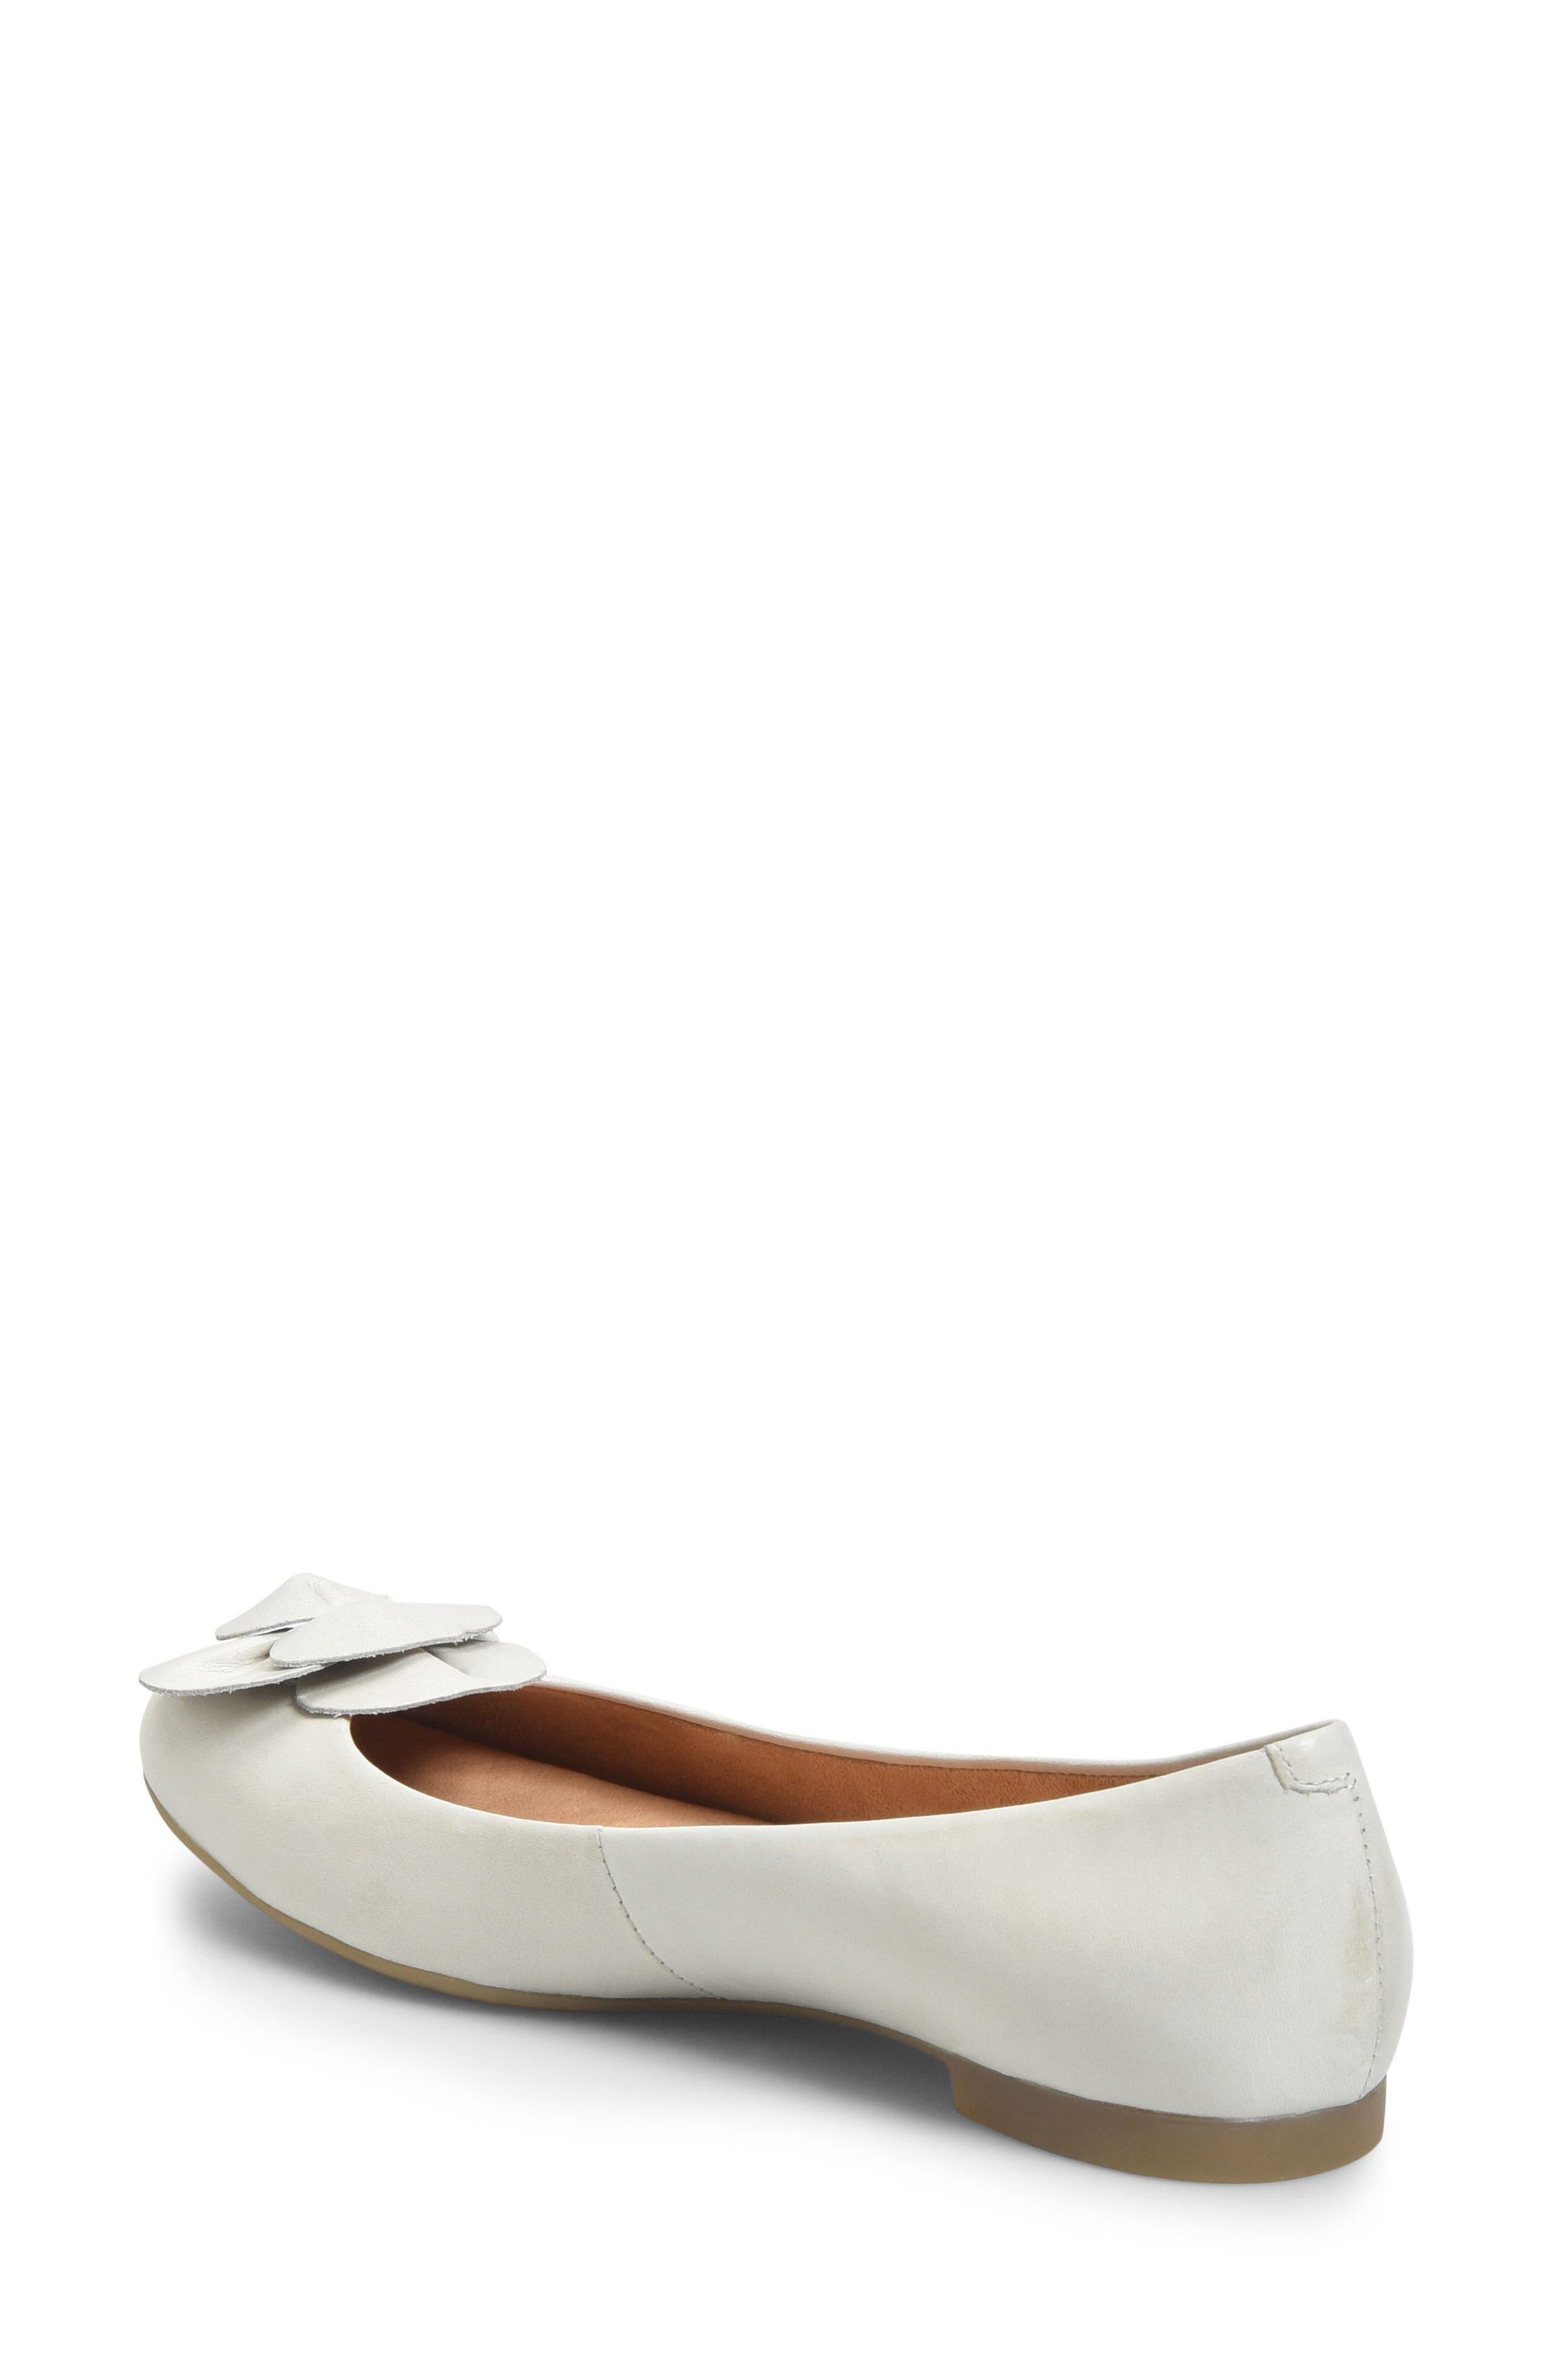 Annelie Flat,                             Alternate thumbnail 2, color,                             White Leather